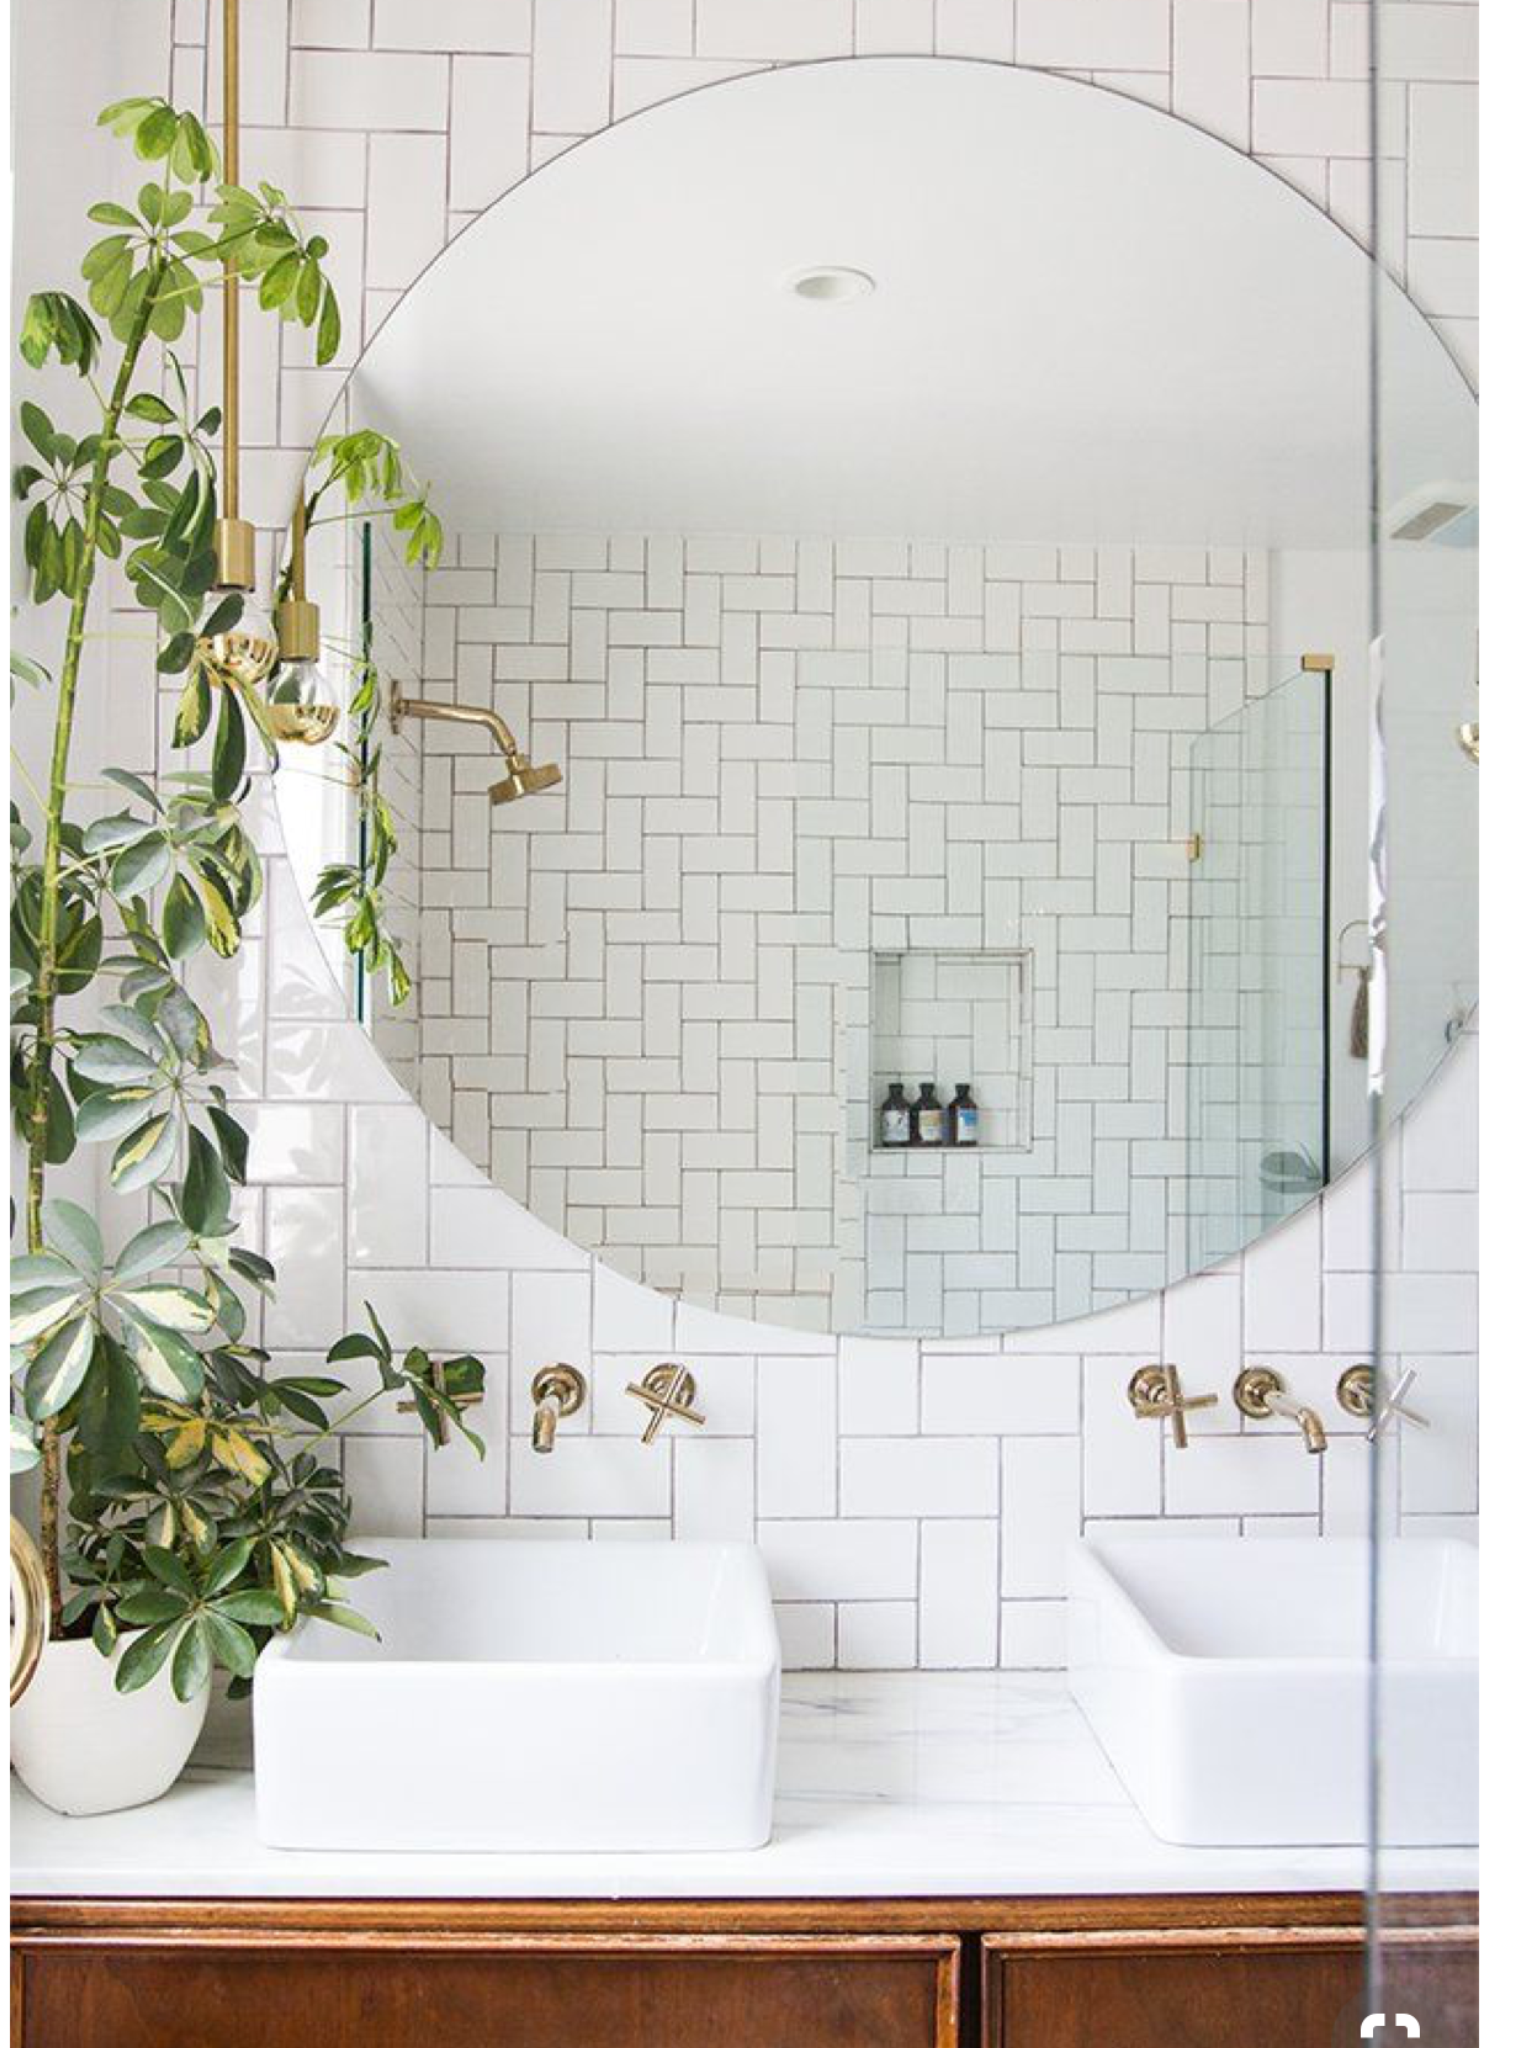 Pin by heather sneyd on interiors bathrooms pinterest bath beautiful double vanity with large round mirror brass fixtures and sconce white subway tile dailygadgetfo Image collections